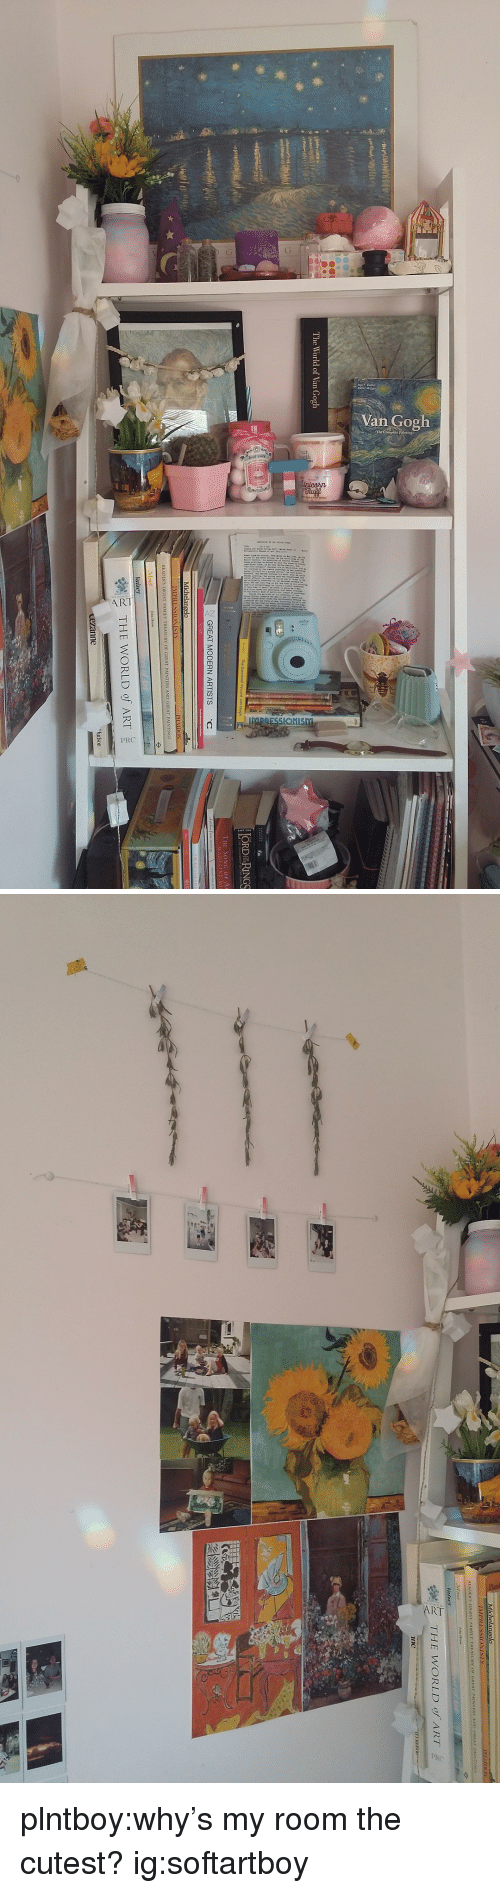 painters: The World of Van Gogh  THE SONG OF A  GREAT MODERN ARTISTS  Michelangelo  READER'S DIGEST FA  TREASURY OF GREAT PAINTERS AND GREAT PAINTINGS  Jeha House  THE WORLD of ART-  ludson   Ore THE WORLD of ART plntboy:why's my room the cutest? ig:softartboy